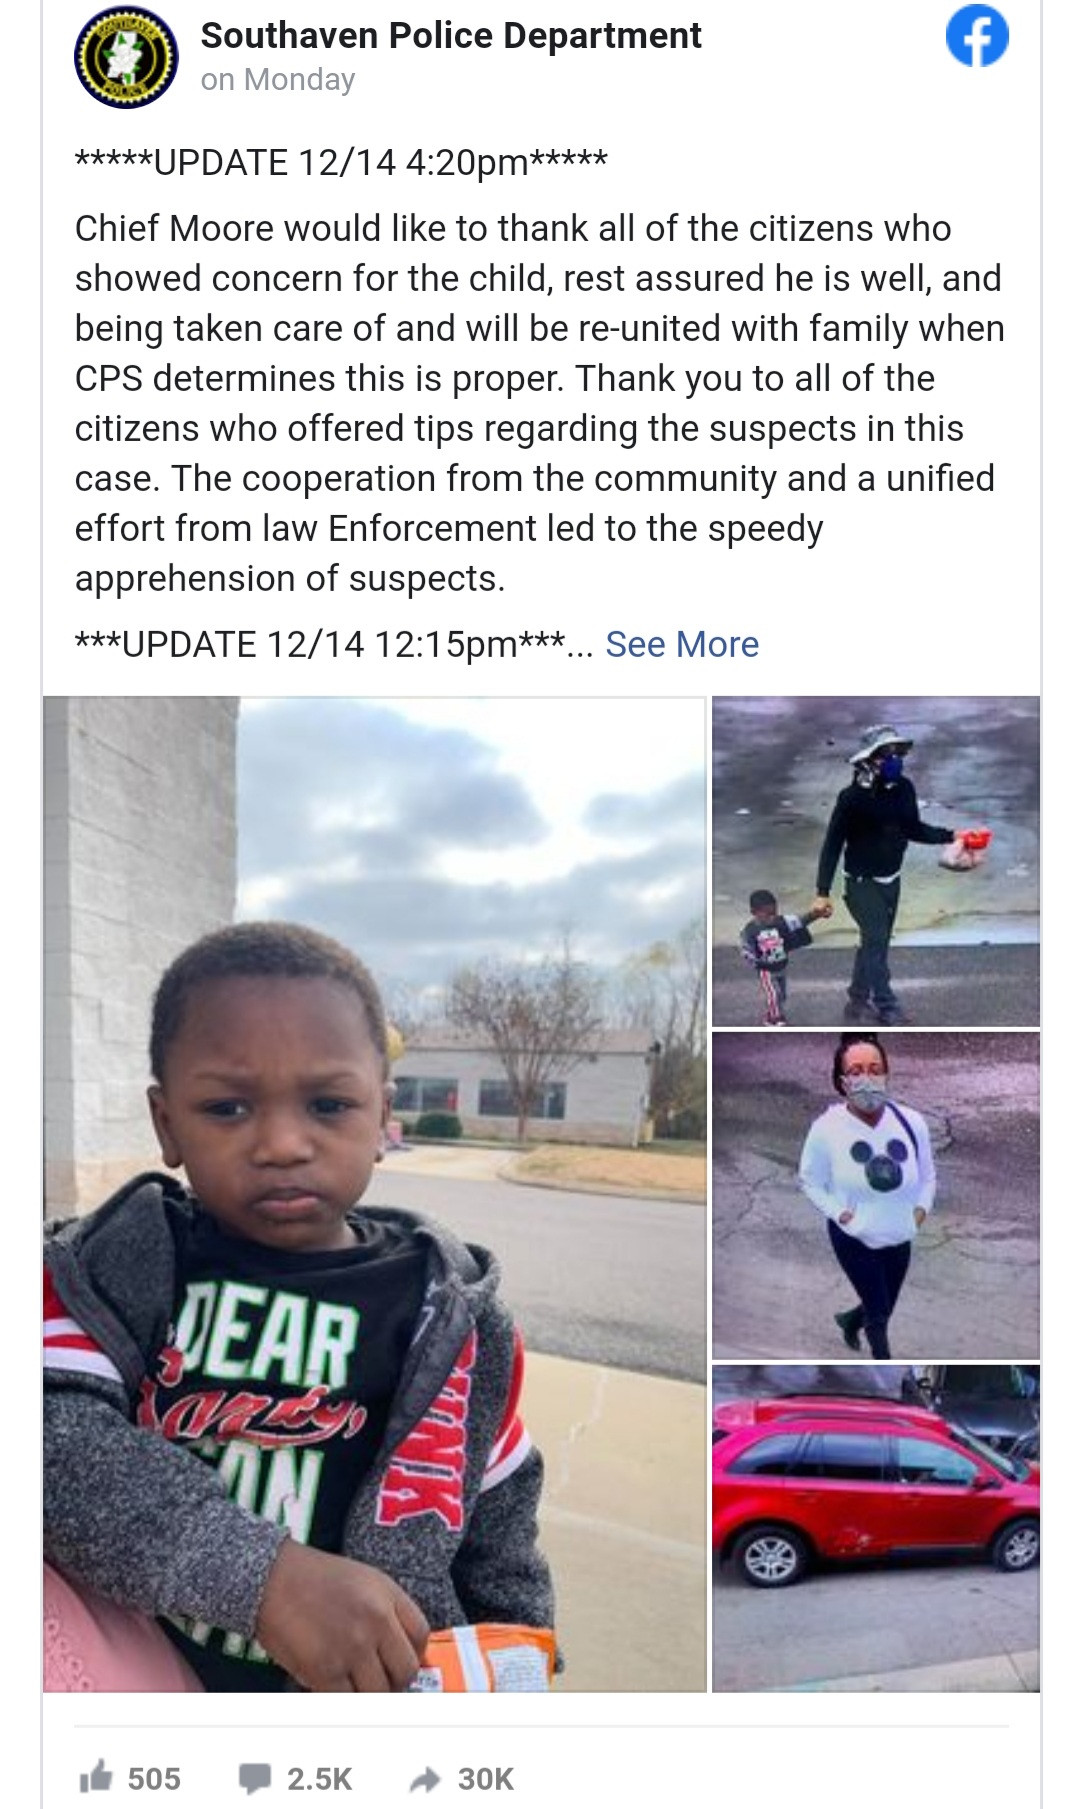 Woman claims 2-year-old boy abandoned in a goodwill store as her son; says he was kidnapped by a man she knows